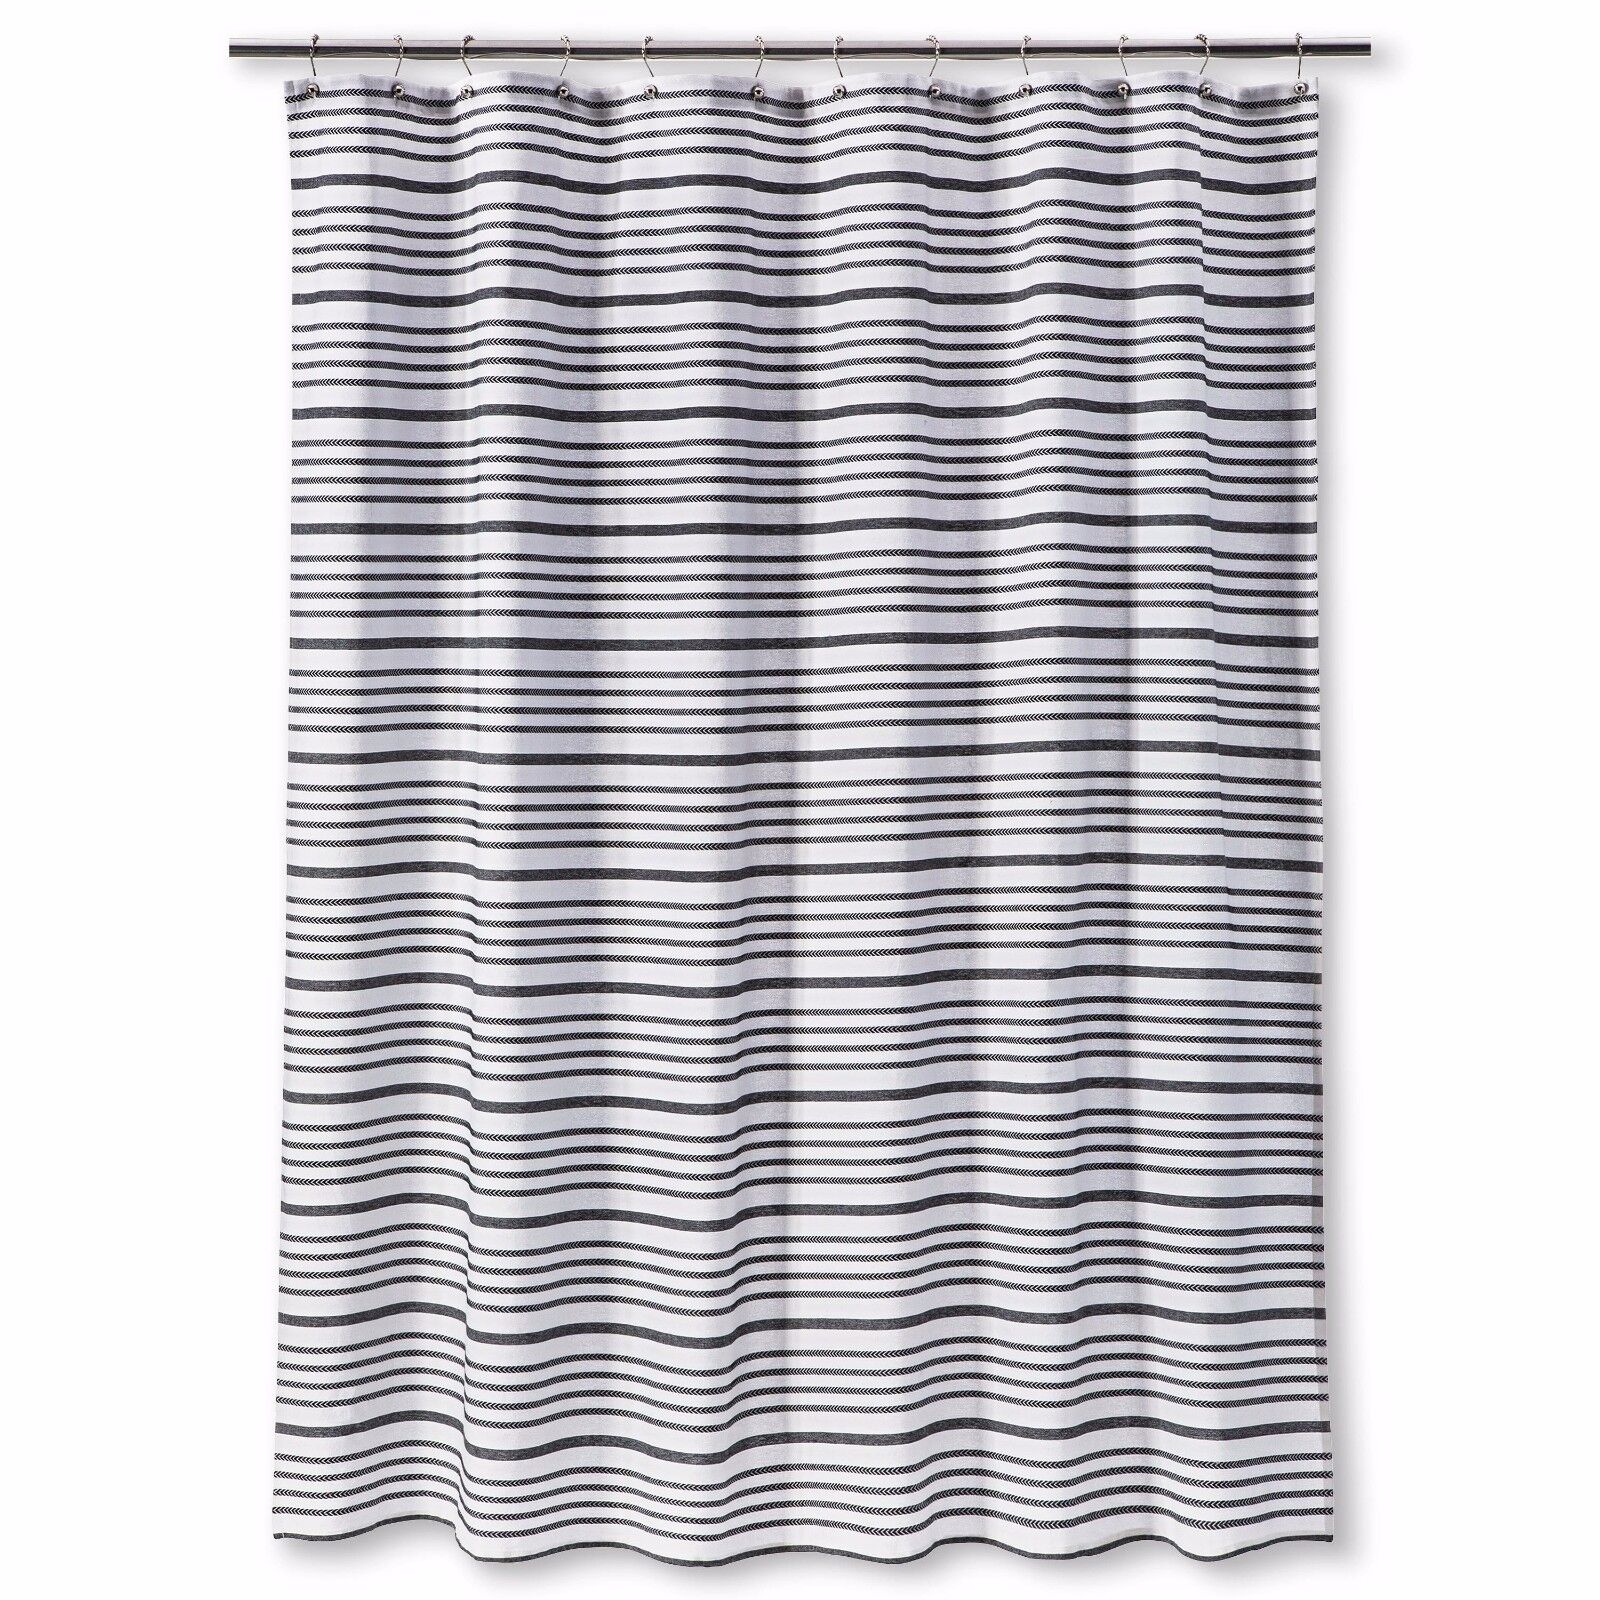 Details About Multi Stripe Shower Curtain Ebony Threshold New In Package